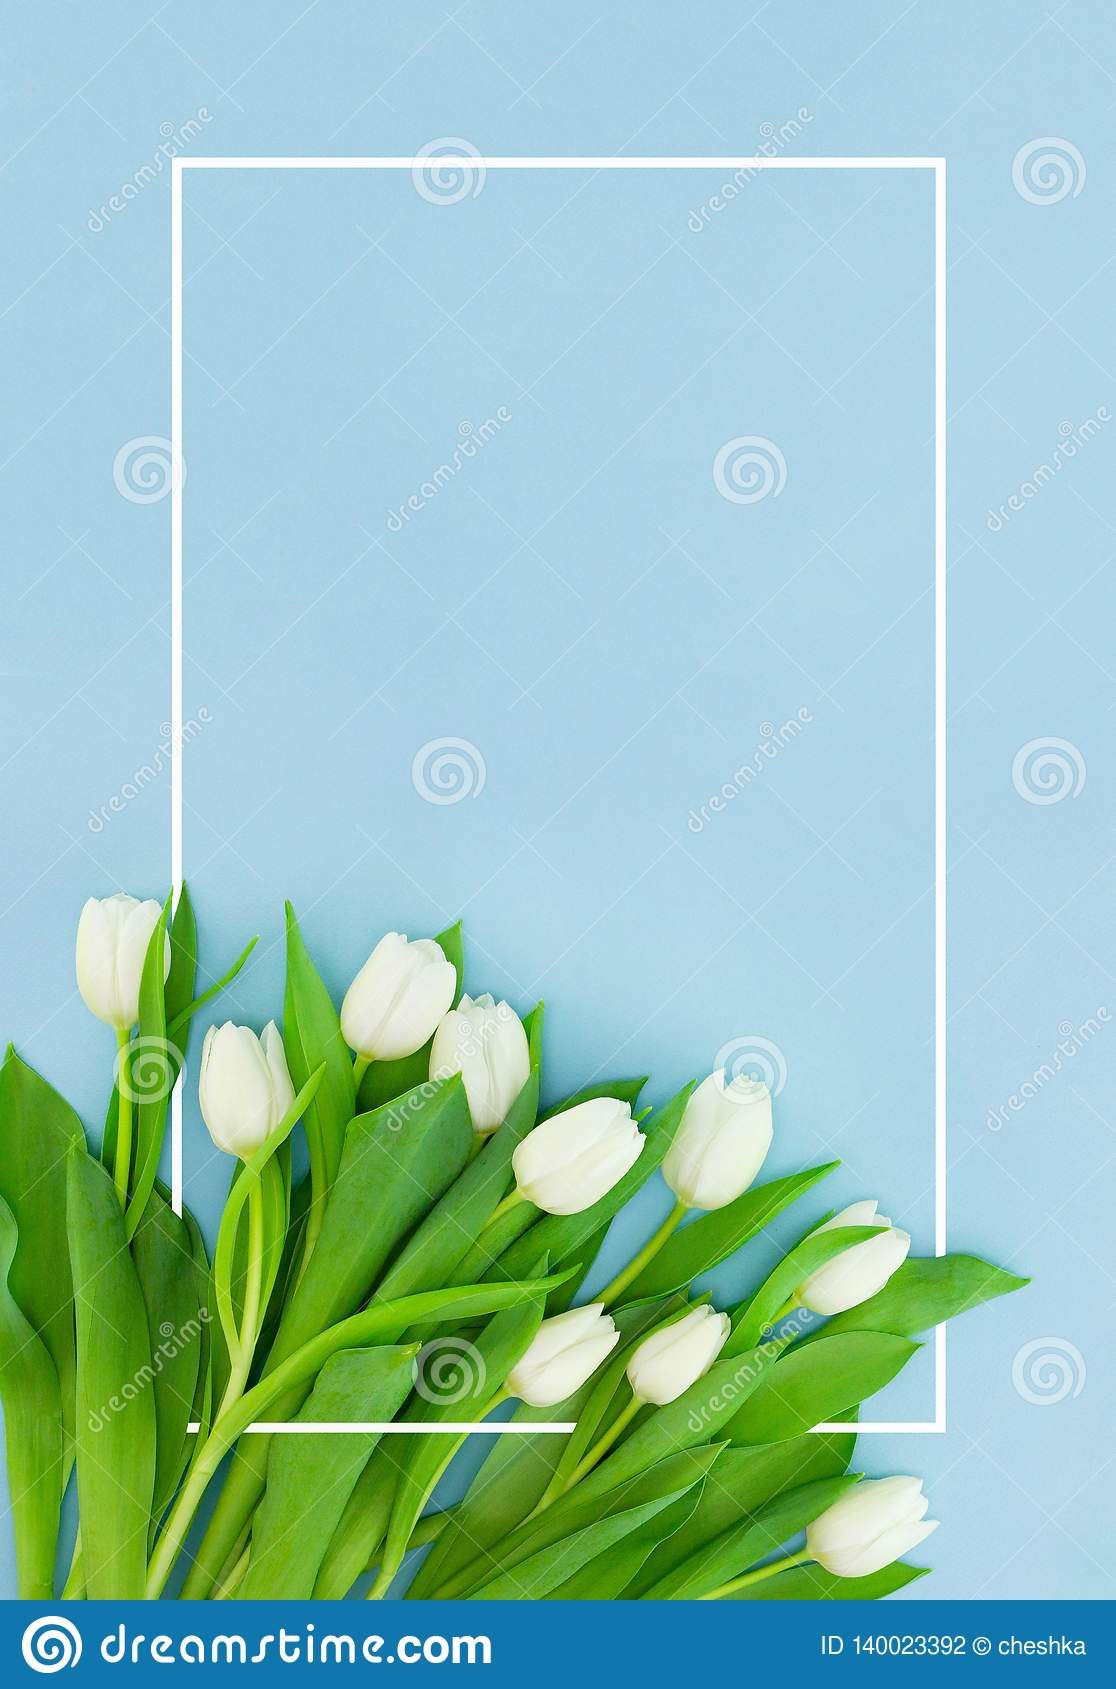 White tulips on blue background with frame, flower postcard for Women`s Day, Mother`s Day or sale concept. Floral spring